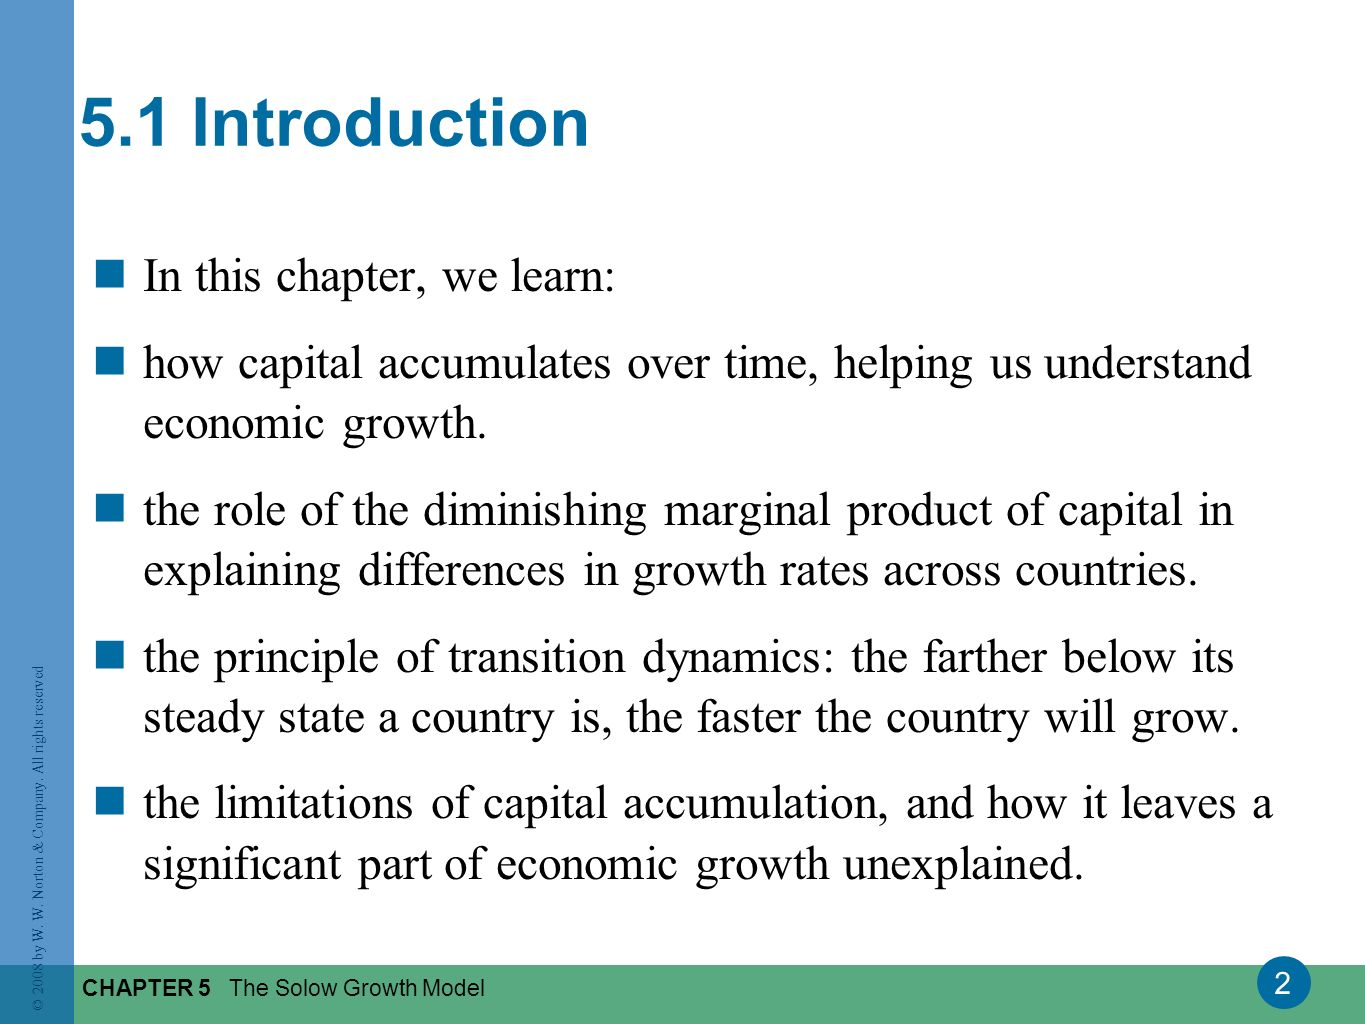 5.1 Introduction In this chapter, we learn: